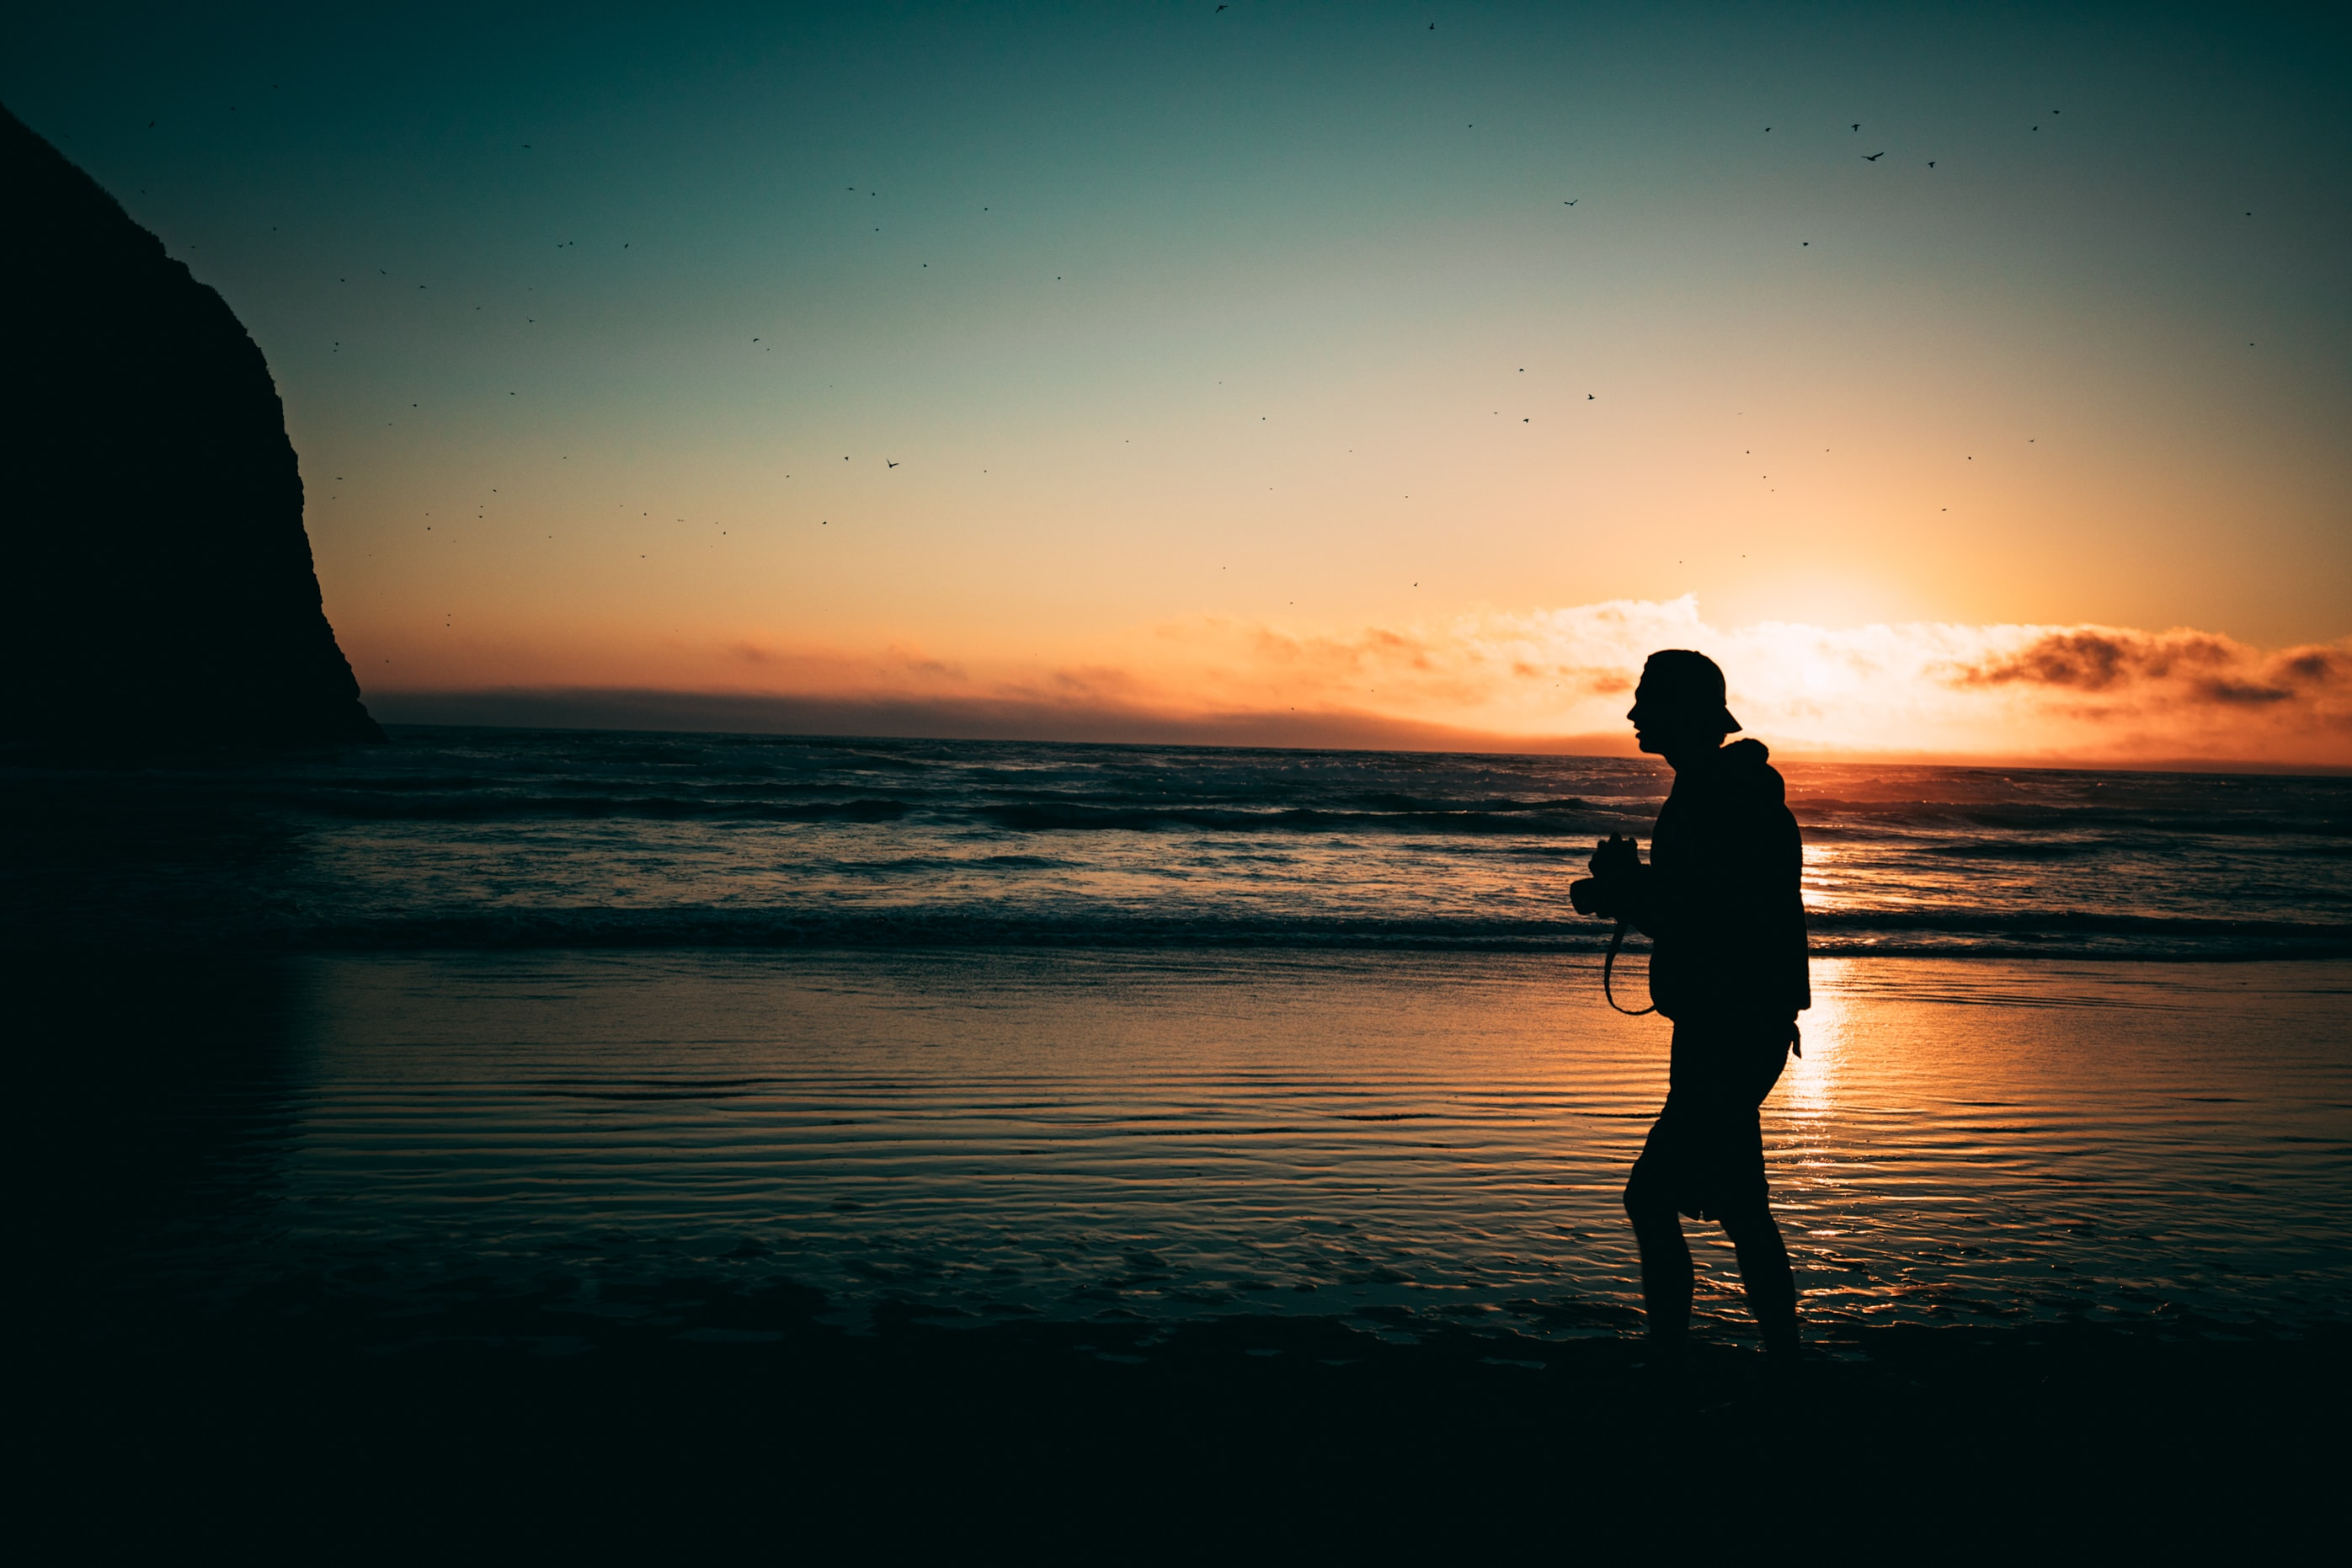 man walking on seashore at golden hour